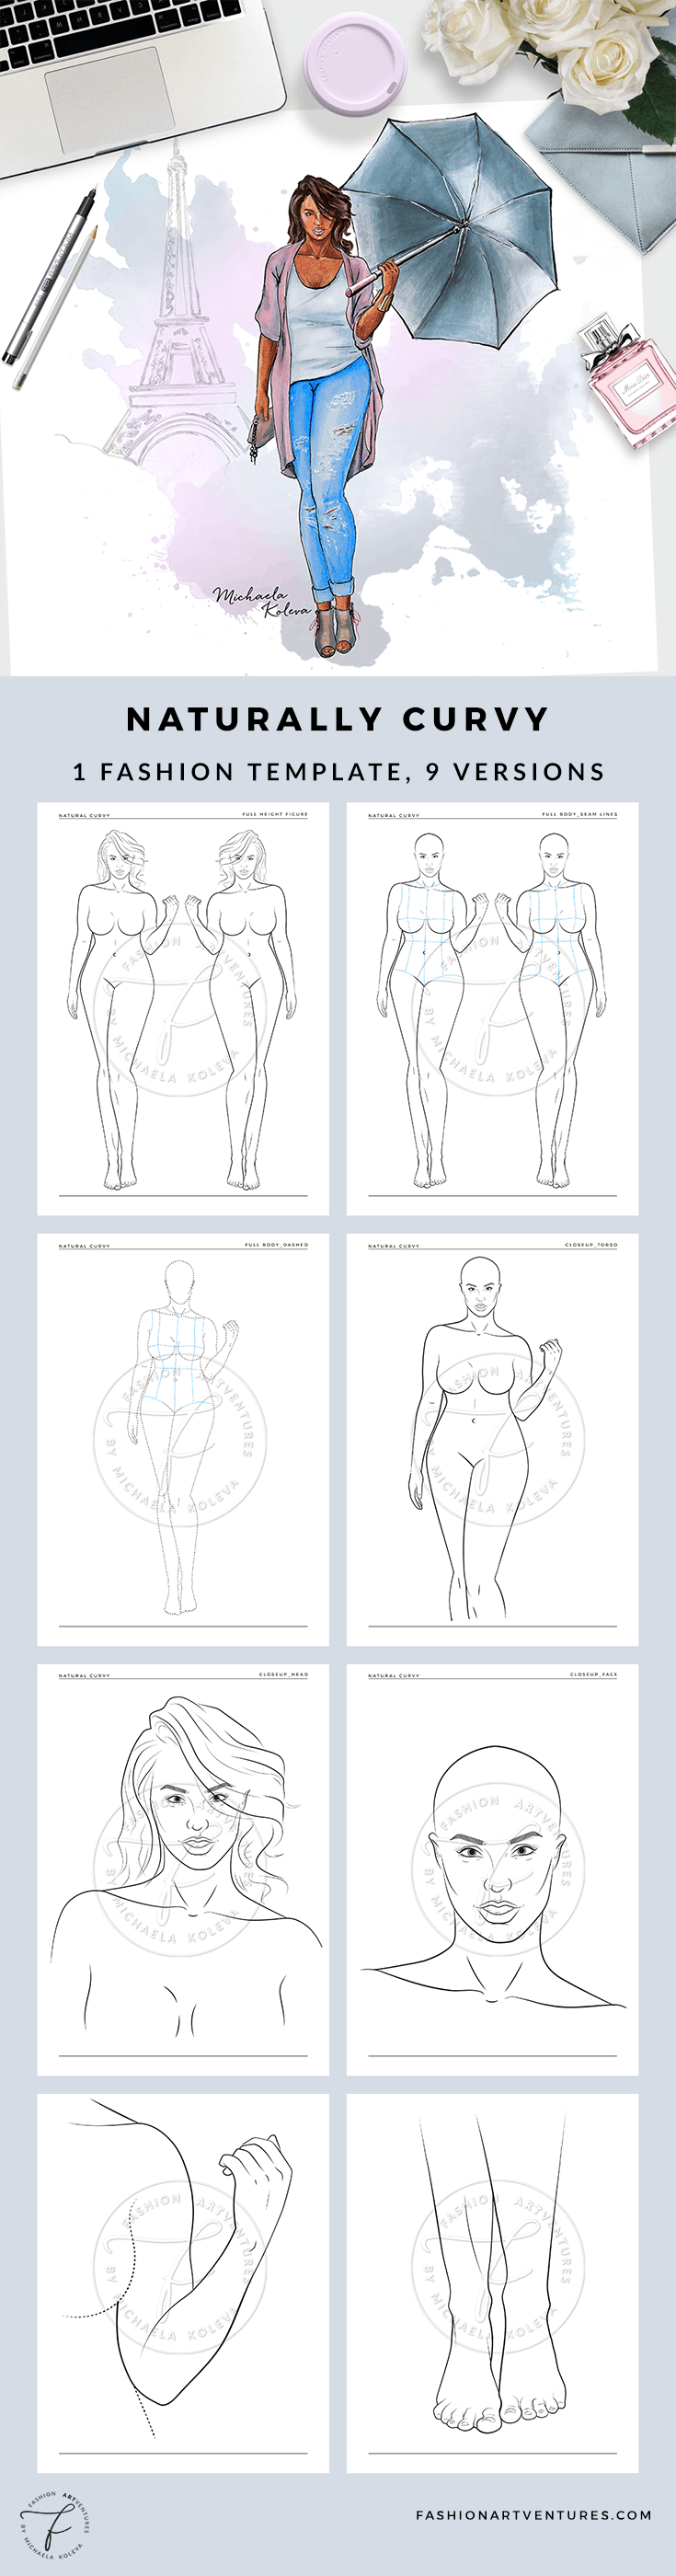 Naturally Curvy Fashion Template Cover